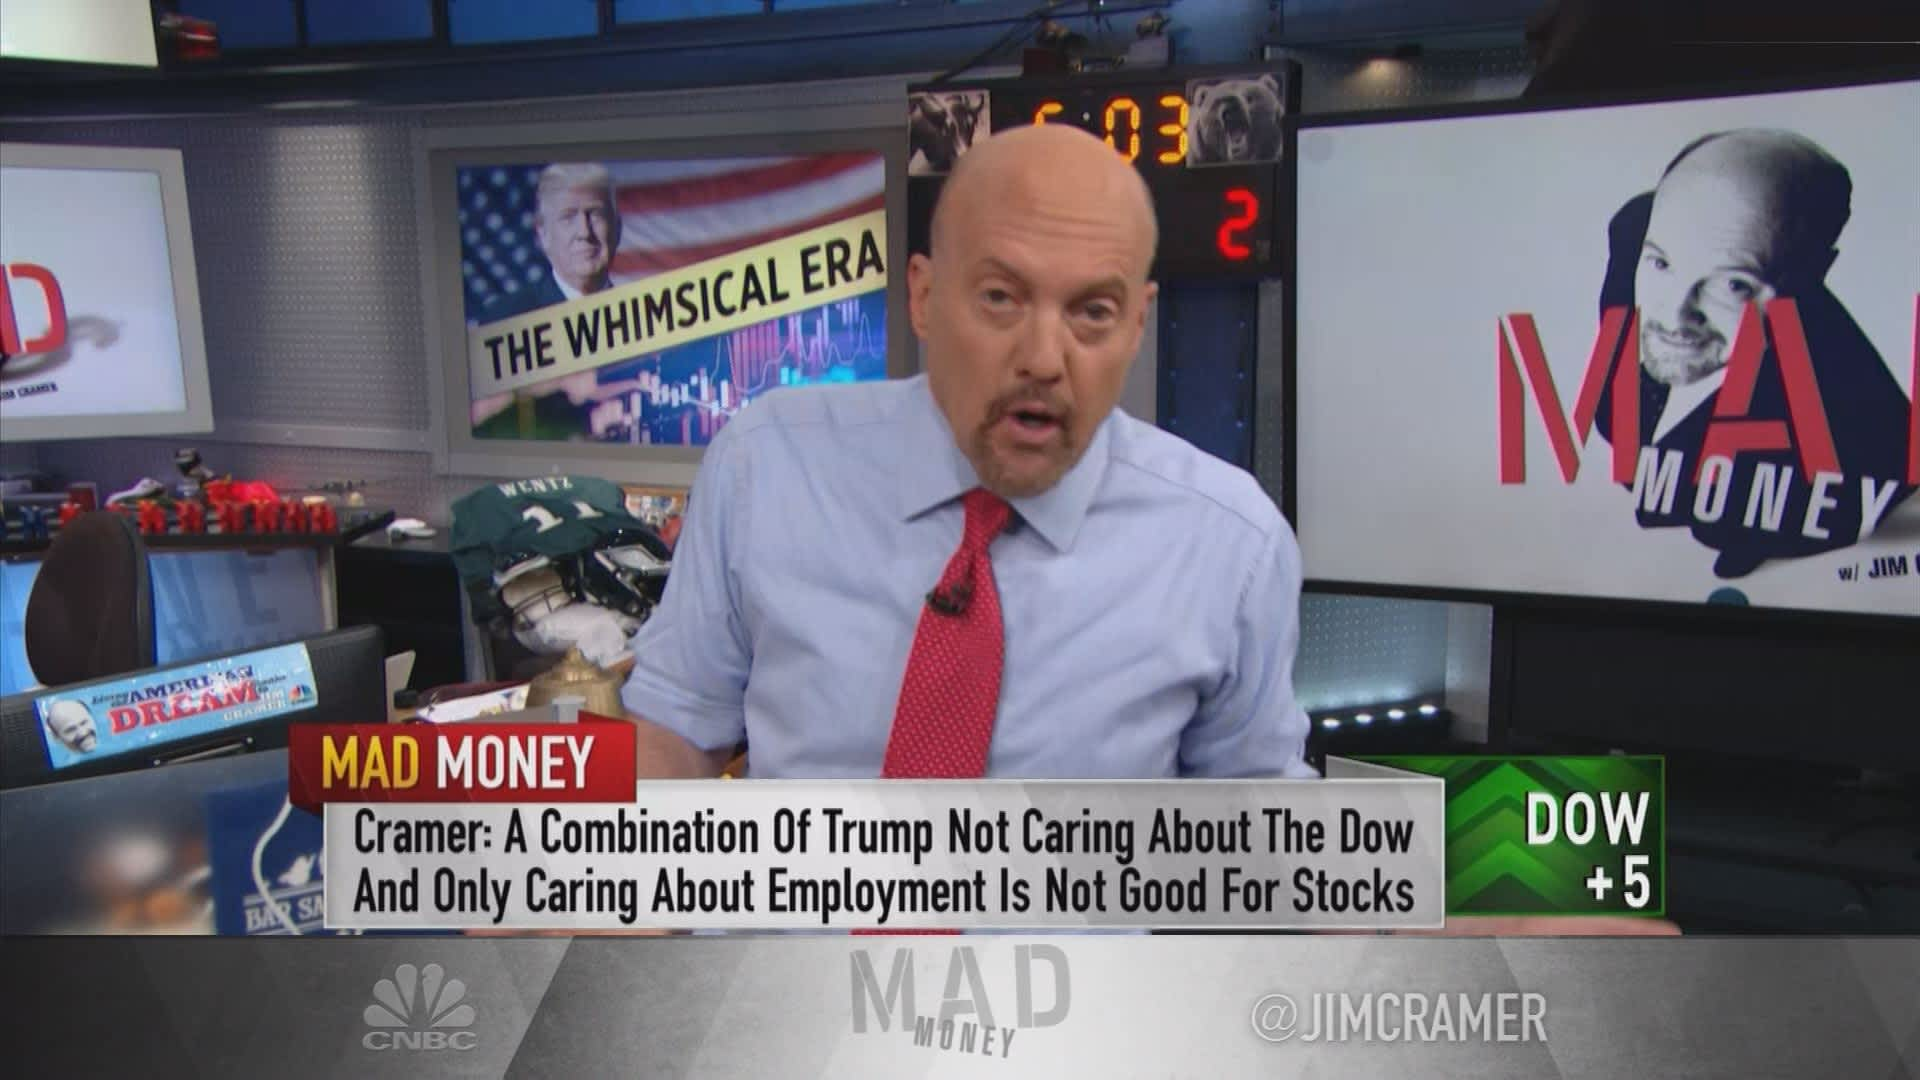 Cramer: Stock investors could be in trouble if Trump keeps 'business-bashing' like Obama